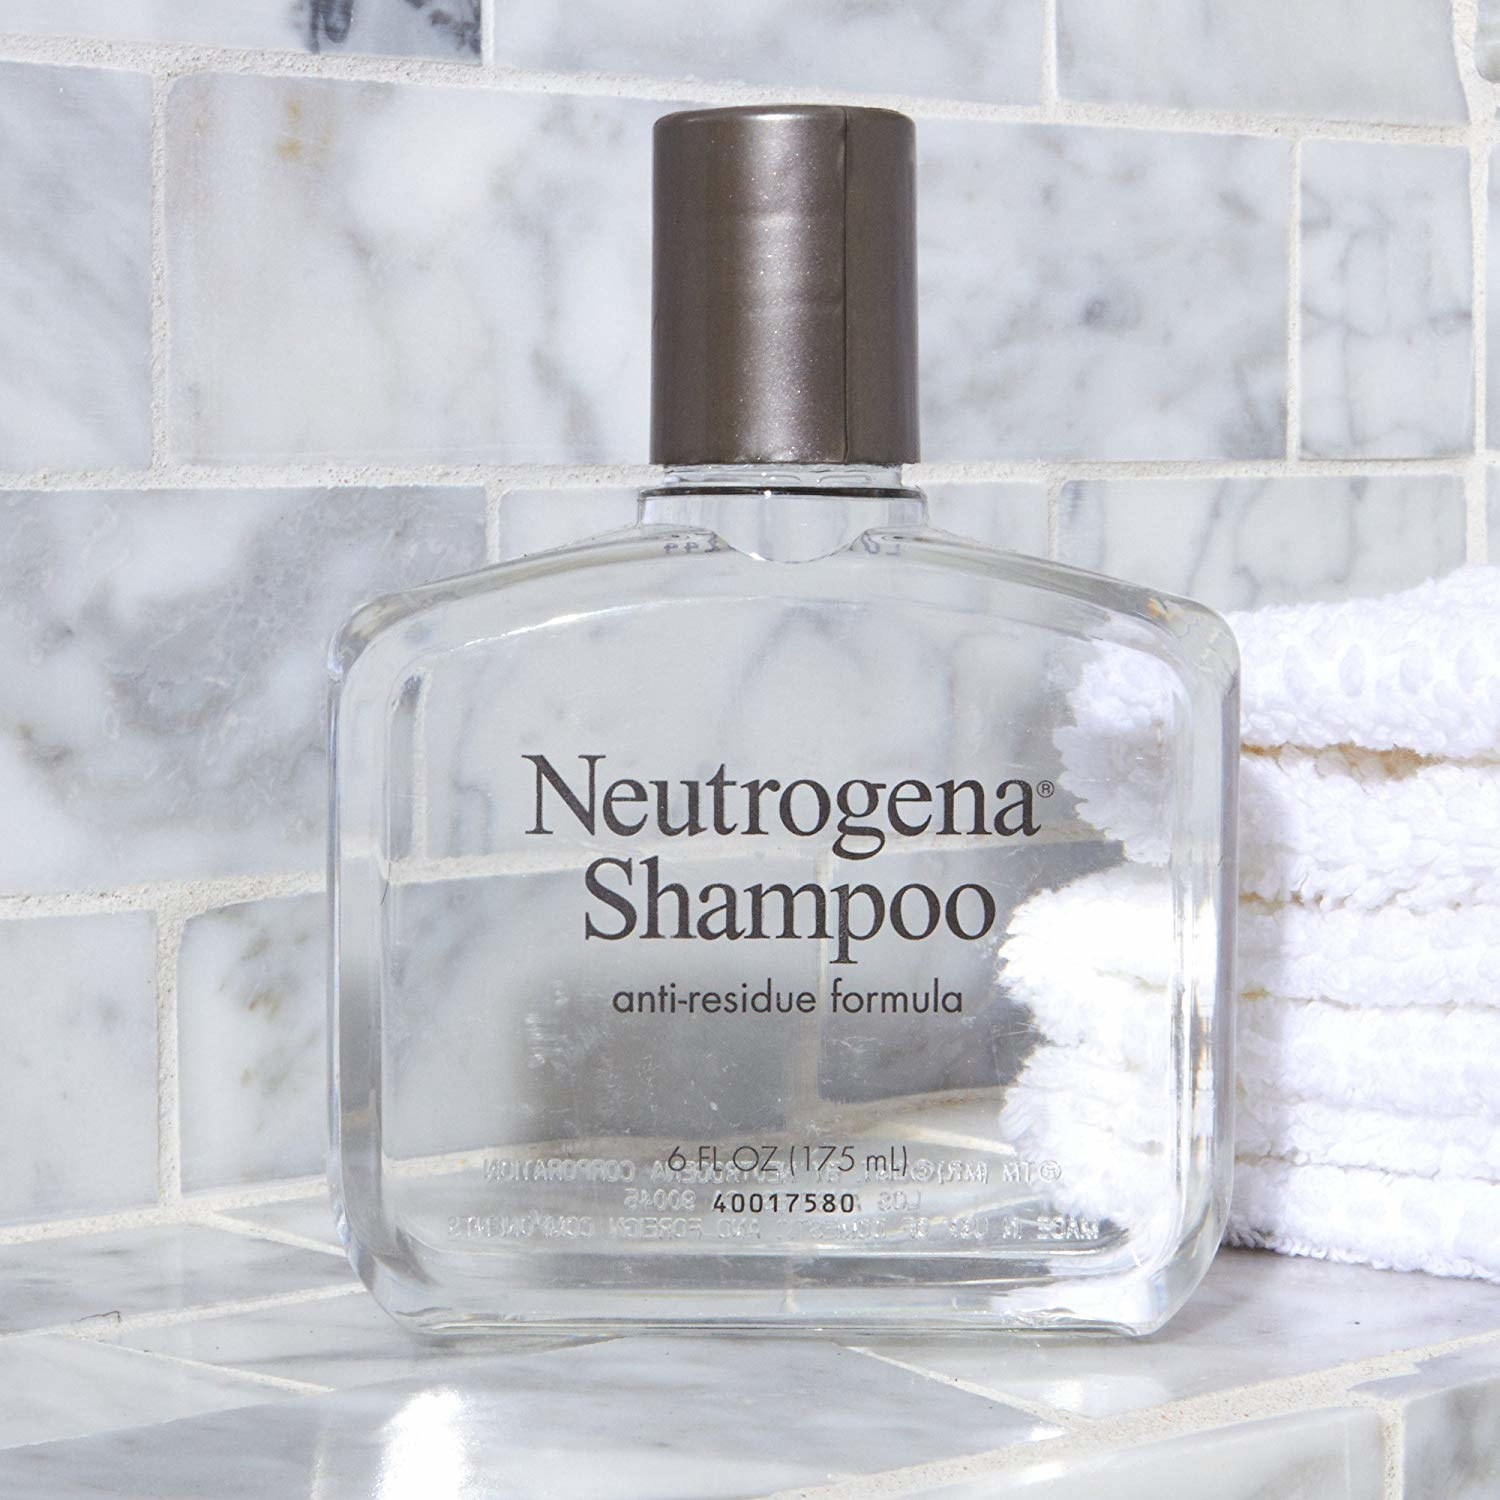 the bottle of shampoo